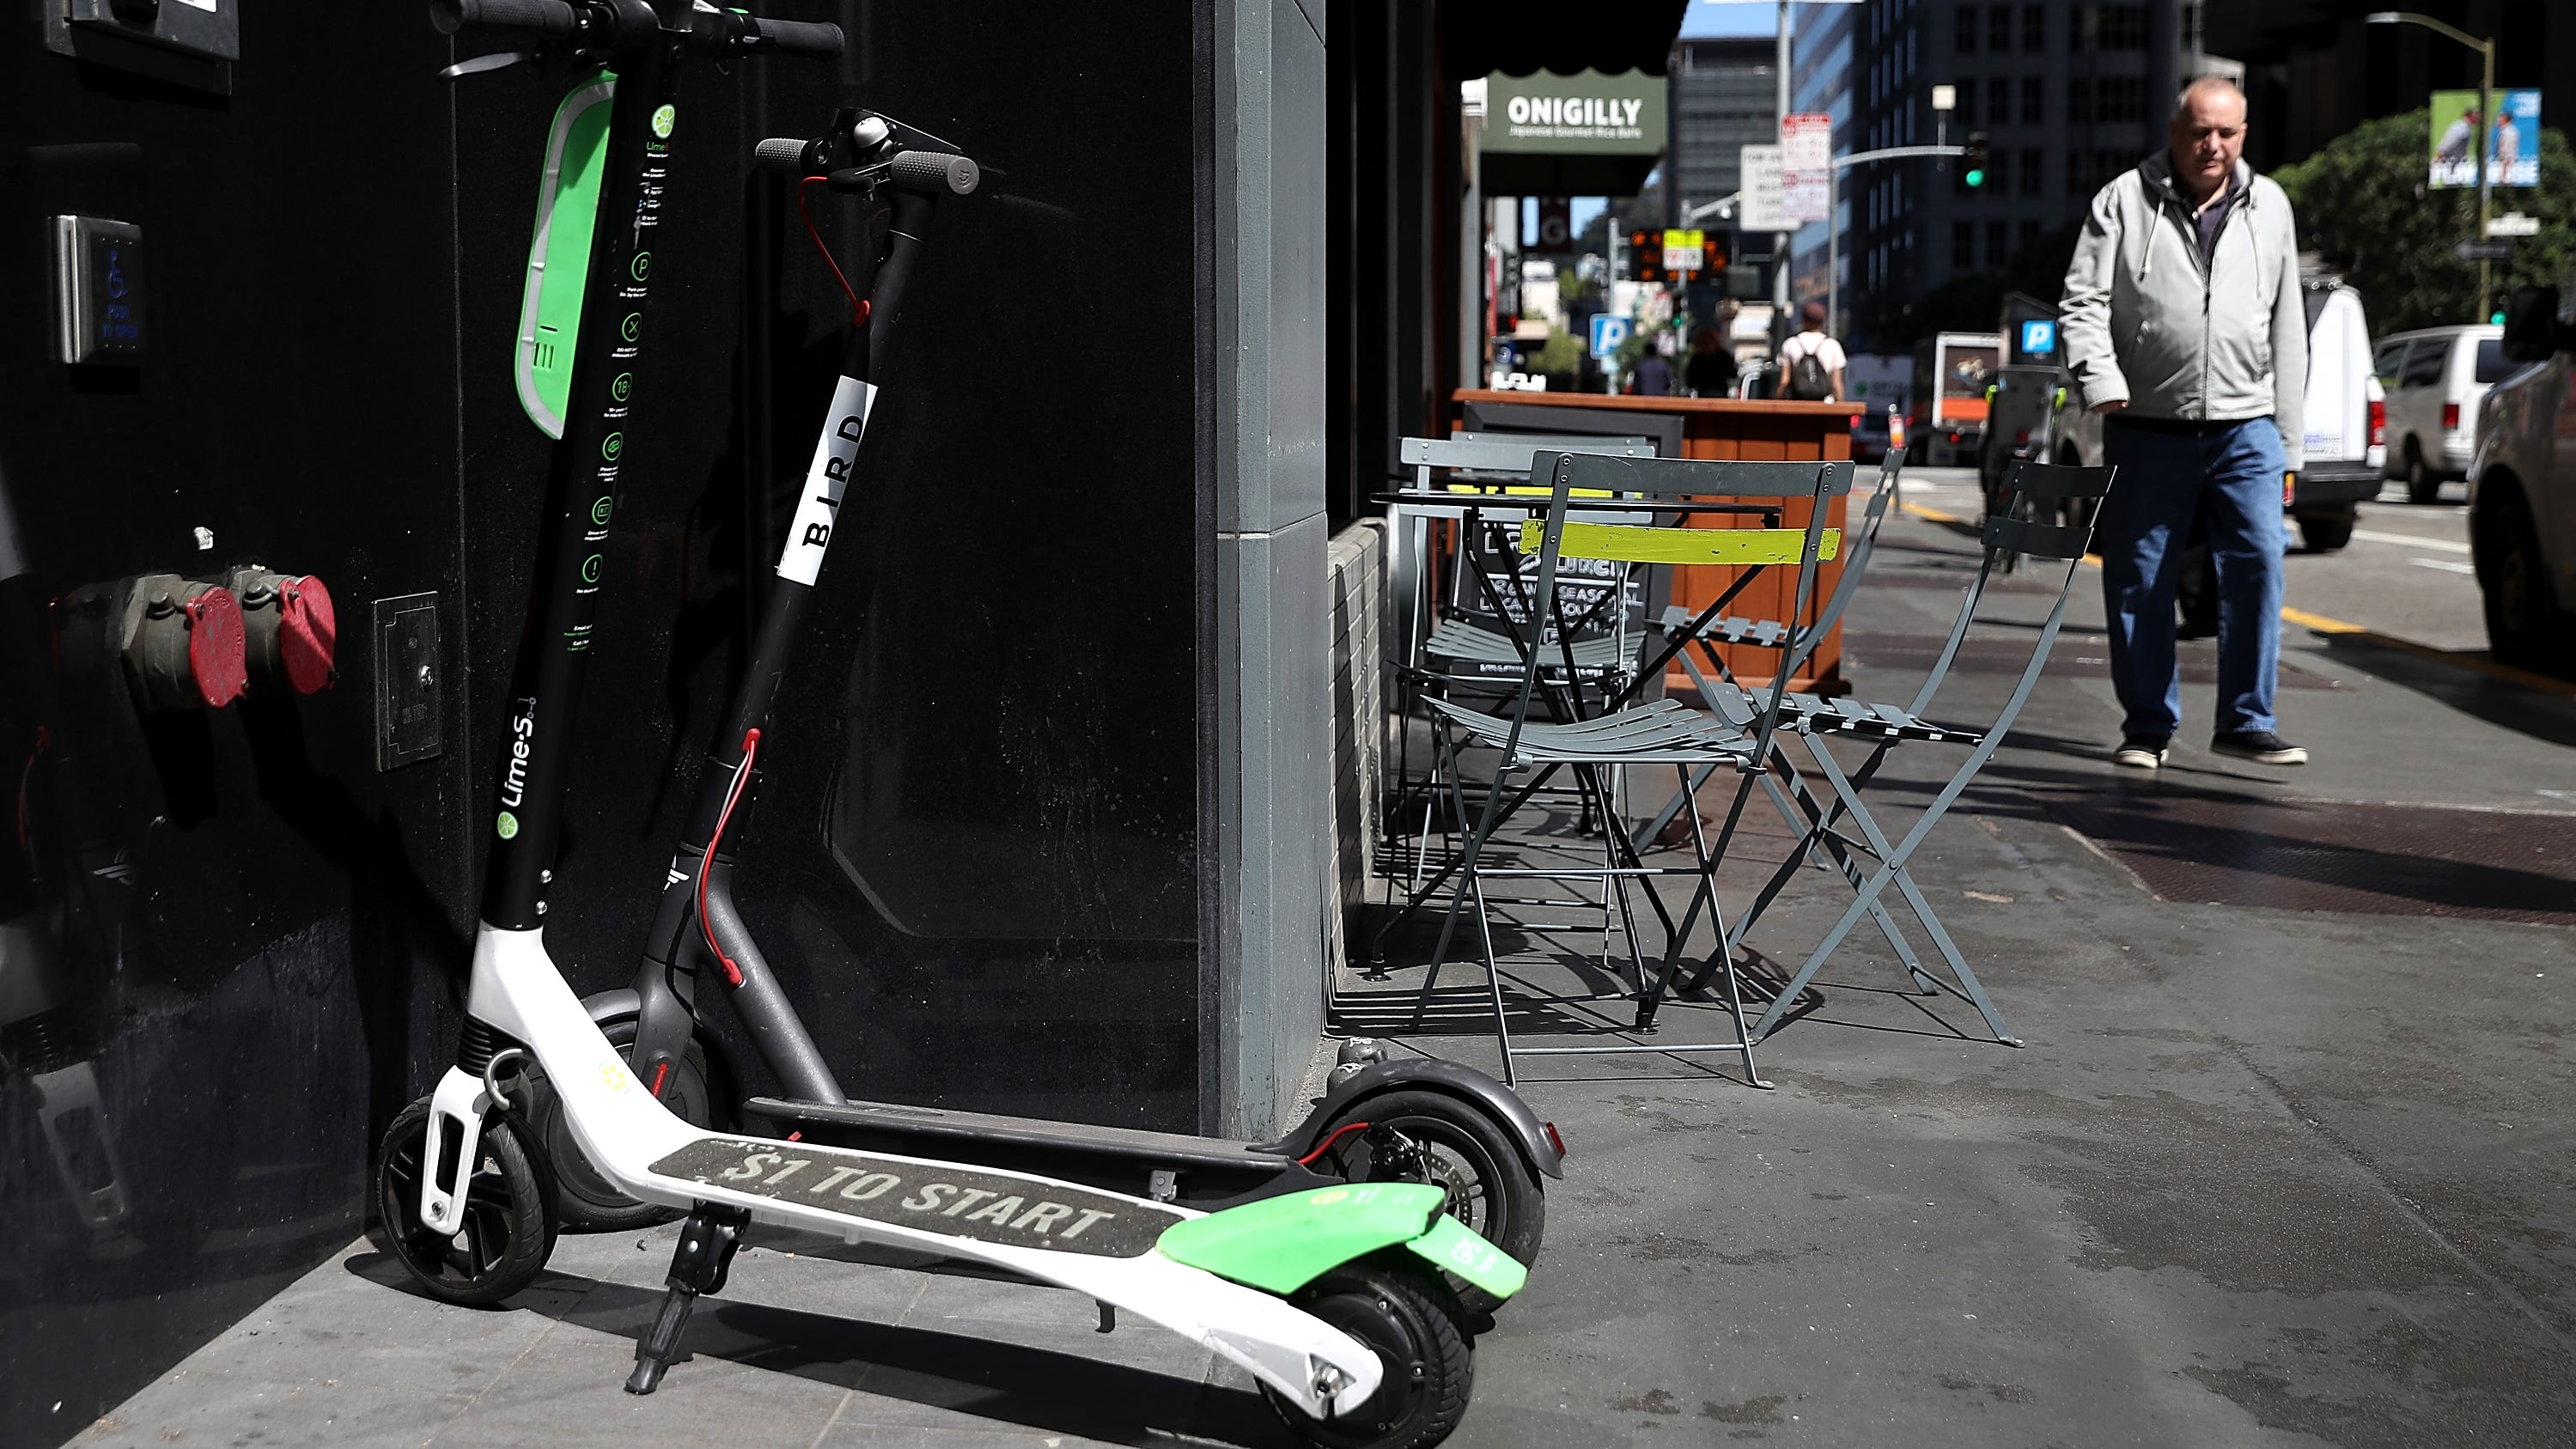 Bird and Lime scooters sit parked in front of a building on April 17, 2018, in San Francisco.